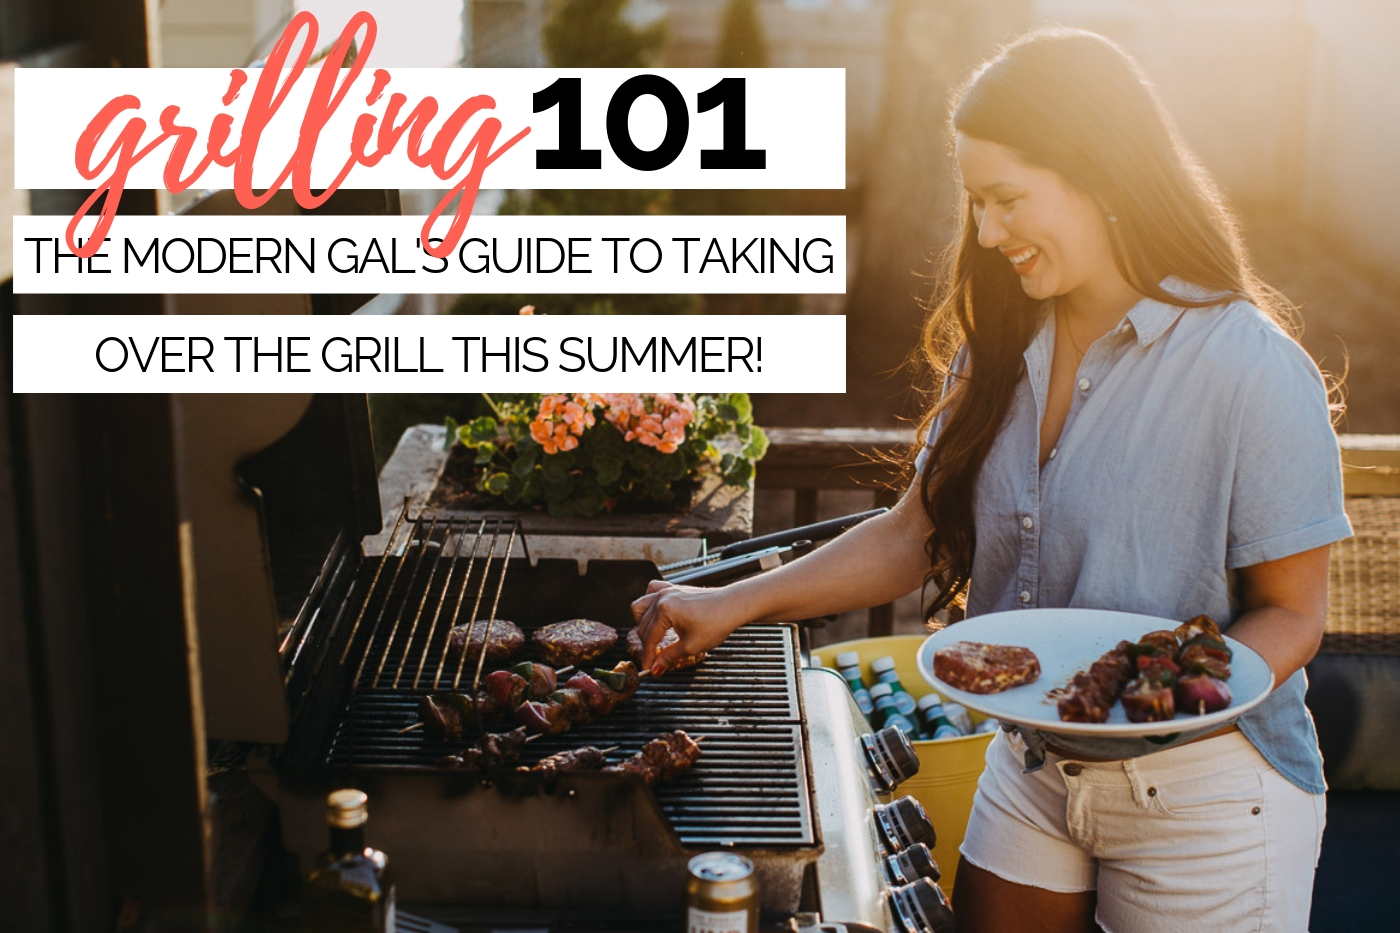 grilling 101: everything you need to know to start grilling this summer! grilling can be intimidating, but it's so much easier than it seems - i promise! this post will help you go from newbie to grillmaster in no time flat. read on to learn about must-have grilling equipment, how to light your grill, how to clean your grill, & to understand grilling temperatures. #playswellwithbutter #grilling #grillingtips #grillingstation #outdoorgrilling #grillingDIY #howtogrill #grillingforbeginners